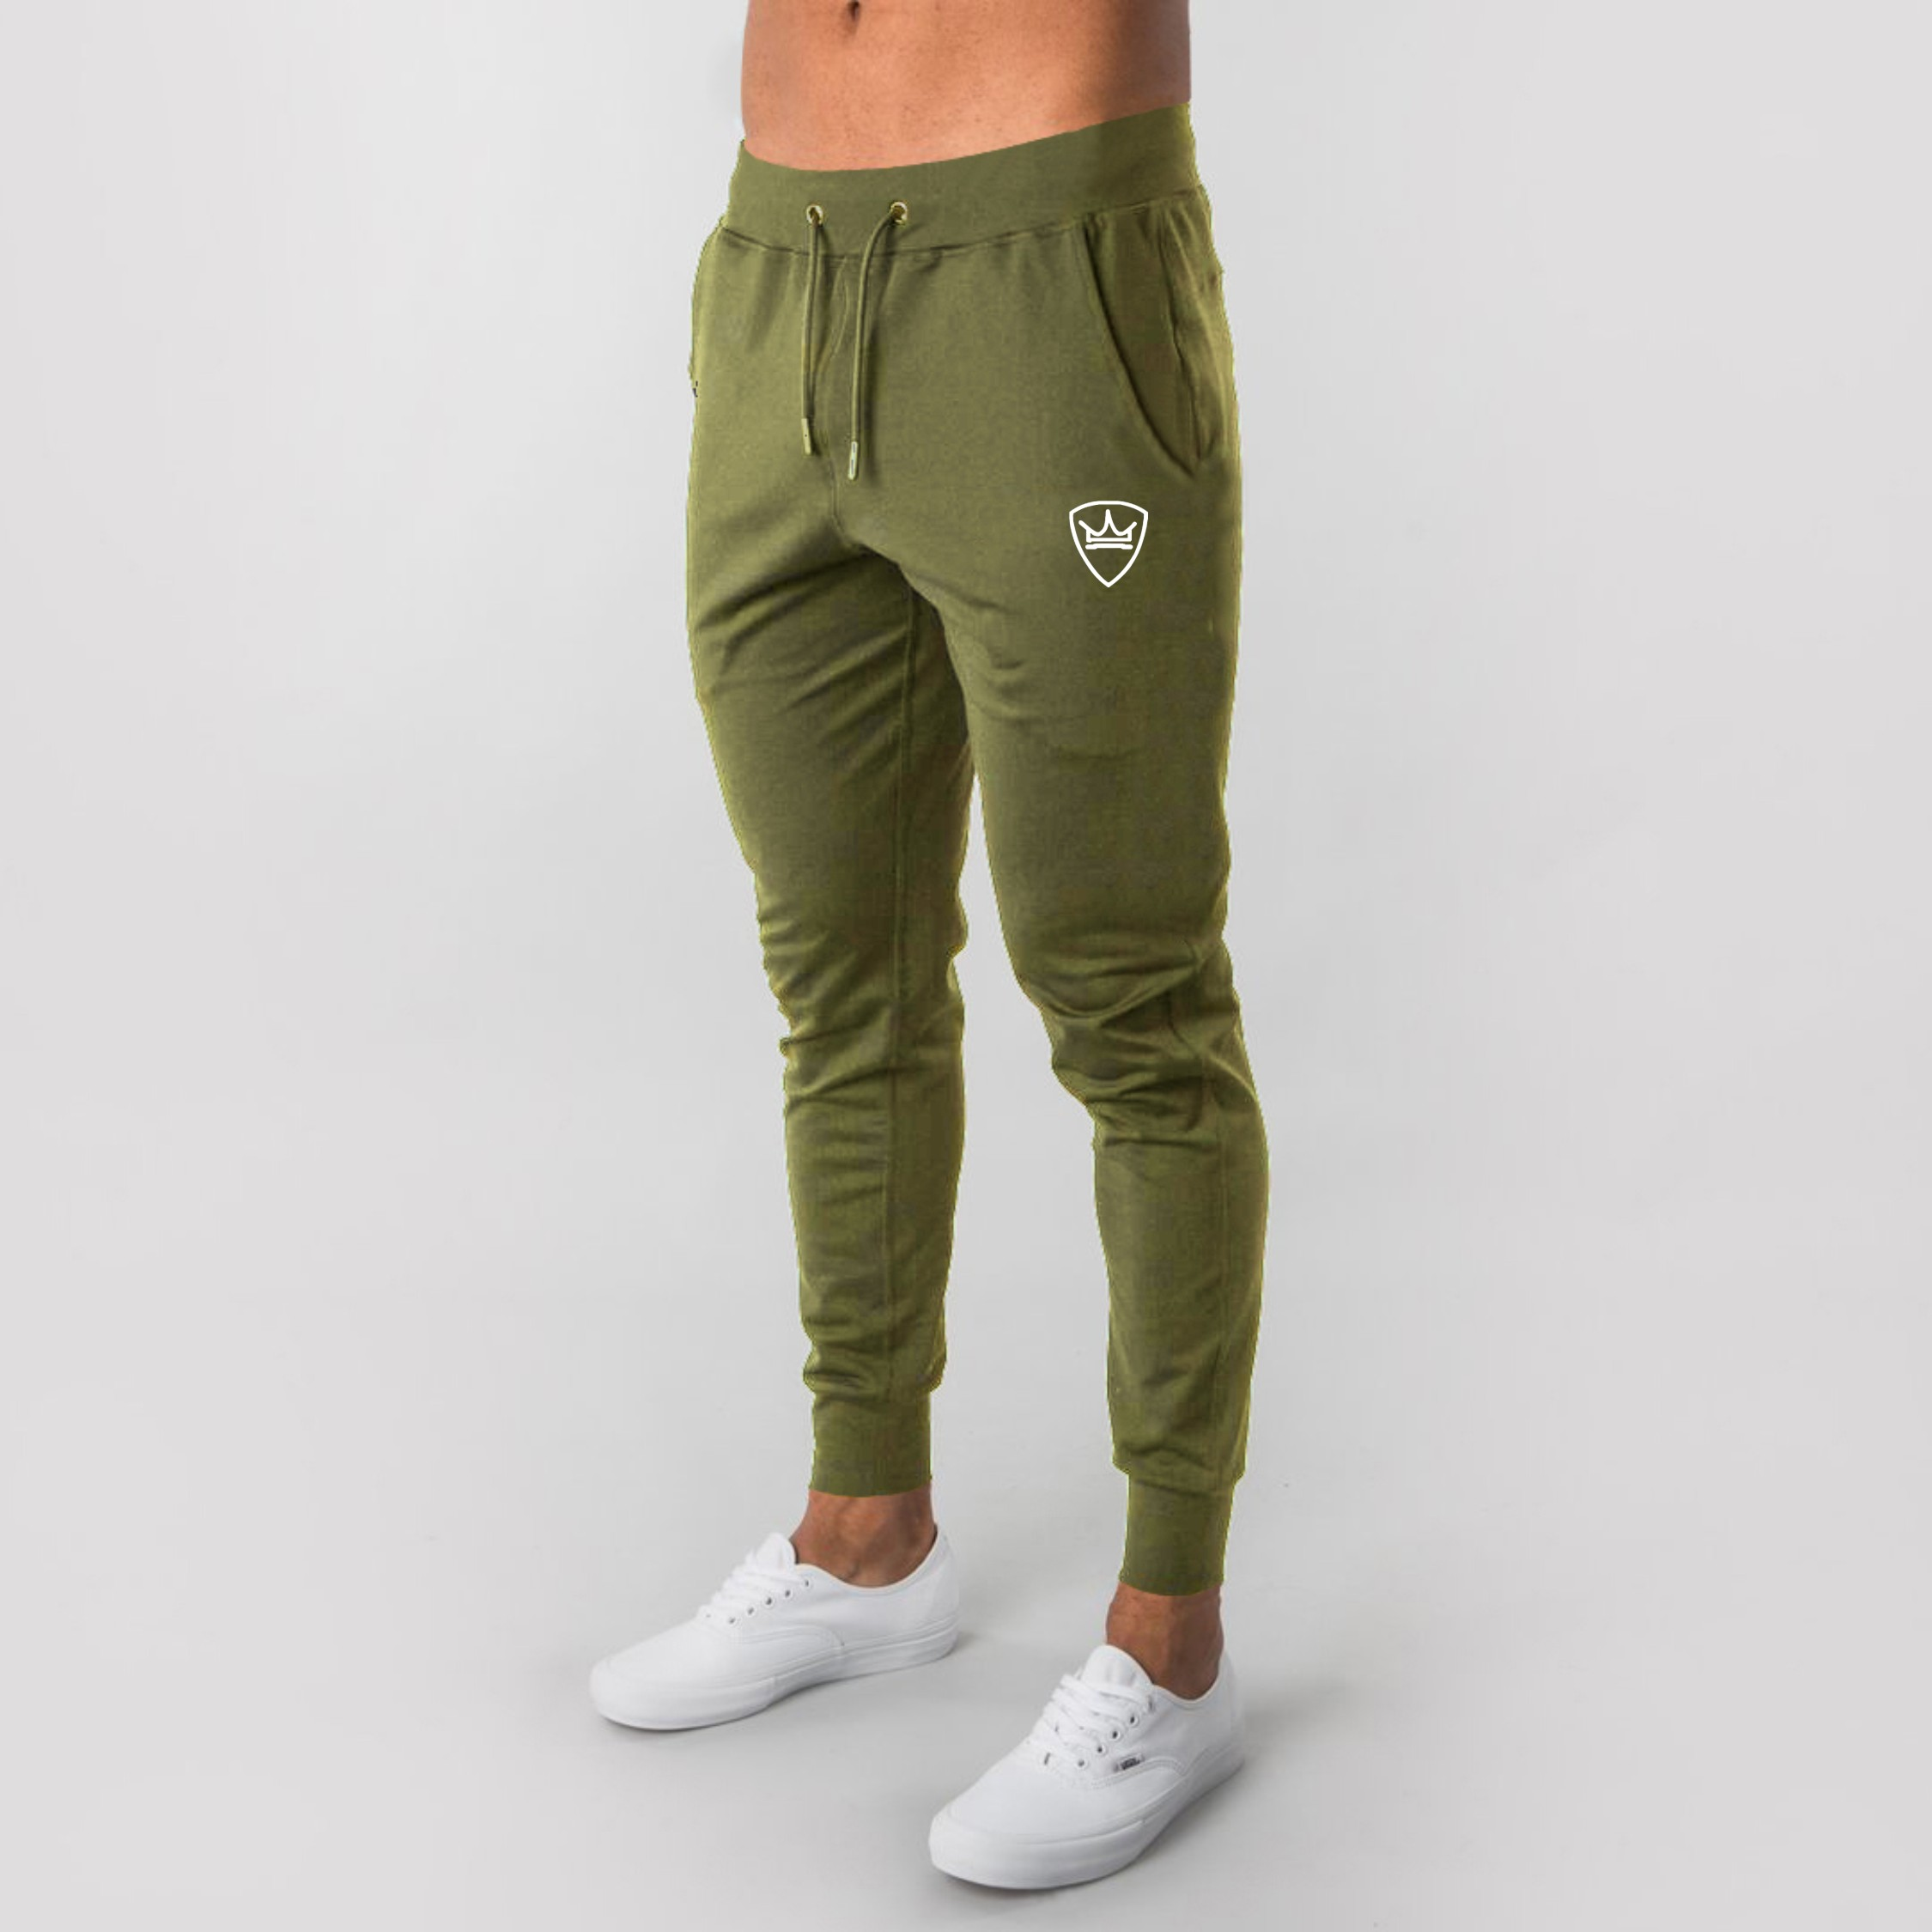 2020 NEW Sport Soft Skinny Pants Men Jogger Sweatpants Gym Fitness Workout Trousers Male Training Running Sports Track Pants Men